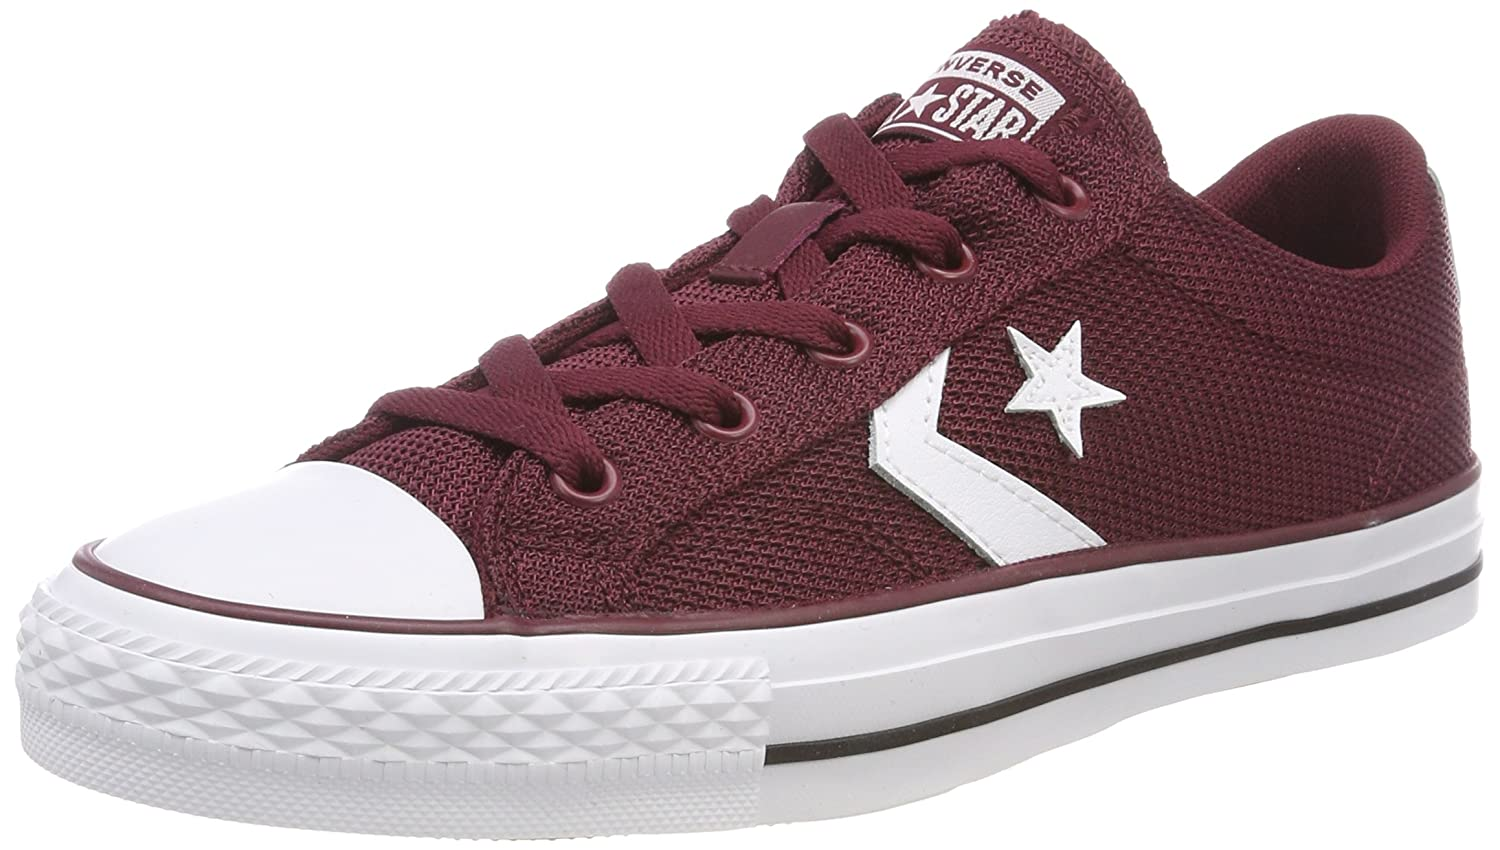 TALLA 35 EU. Converse Star Player Ox Dark Burgundy/White, Zapatillas Unisex Adulto